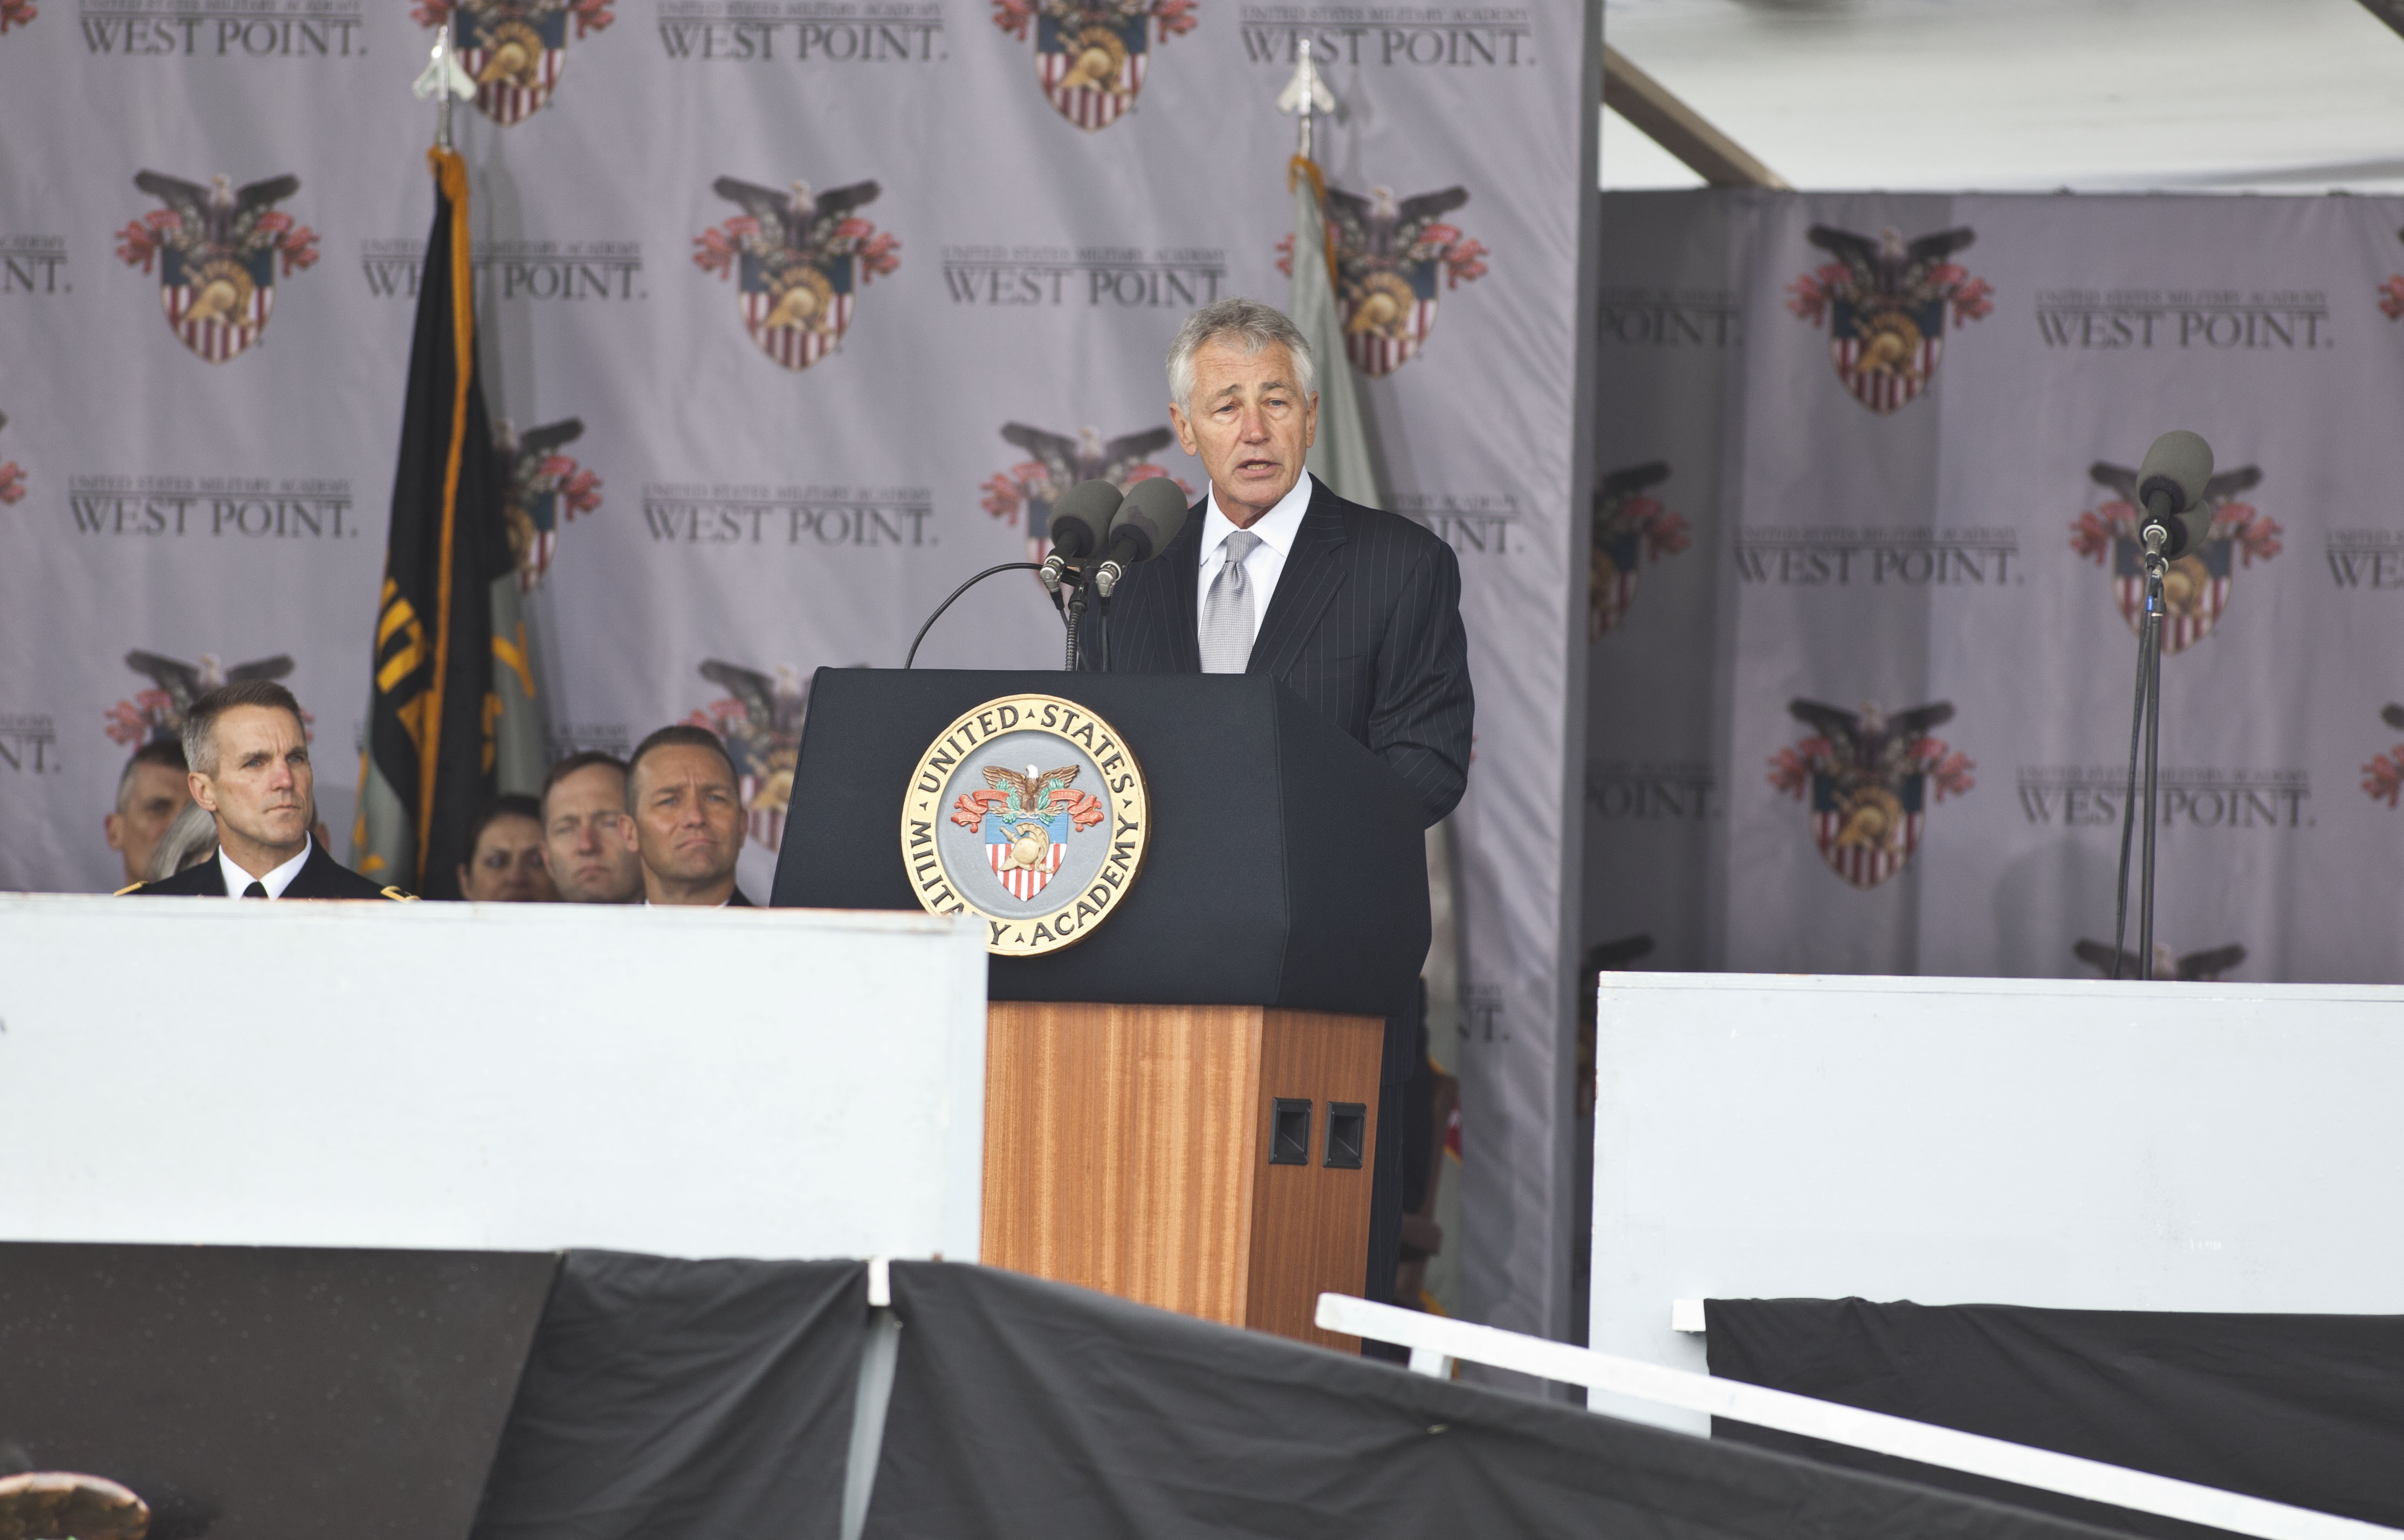 Secretary of Defense Chuck Hagel addresses the United States Military Academy at West Point during the 215 commencement ceremony May 25, 2013 in West Point, New York.